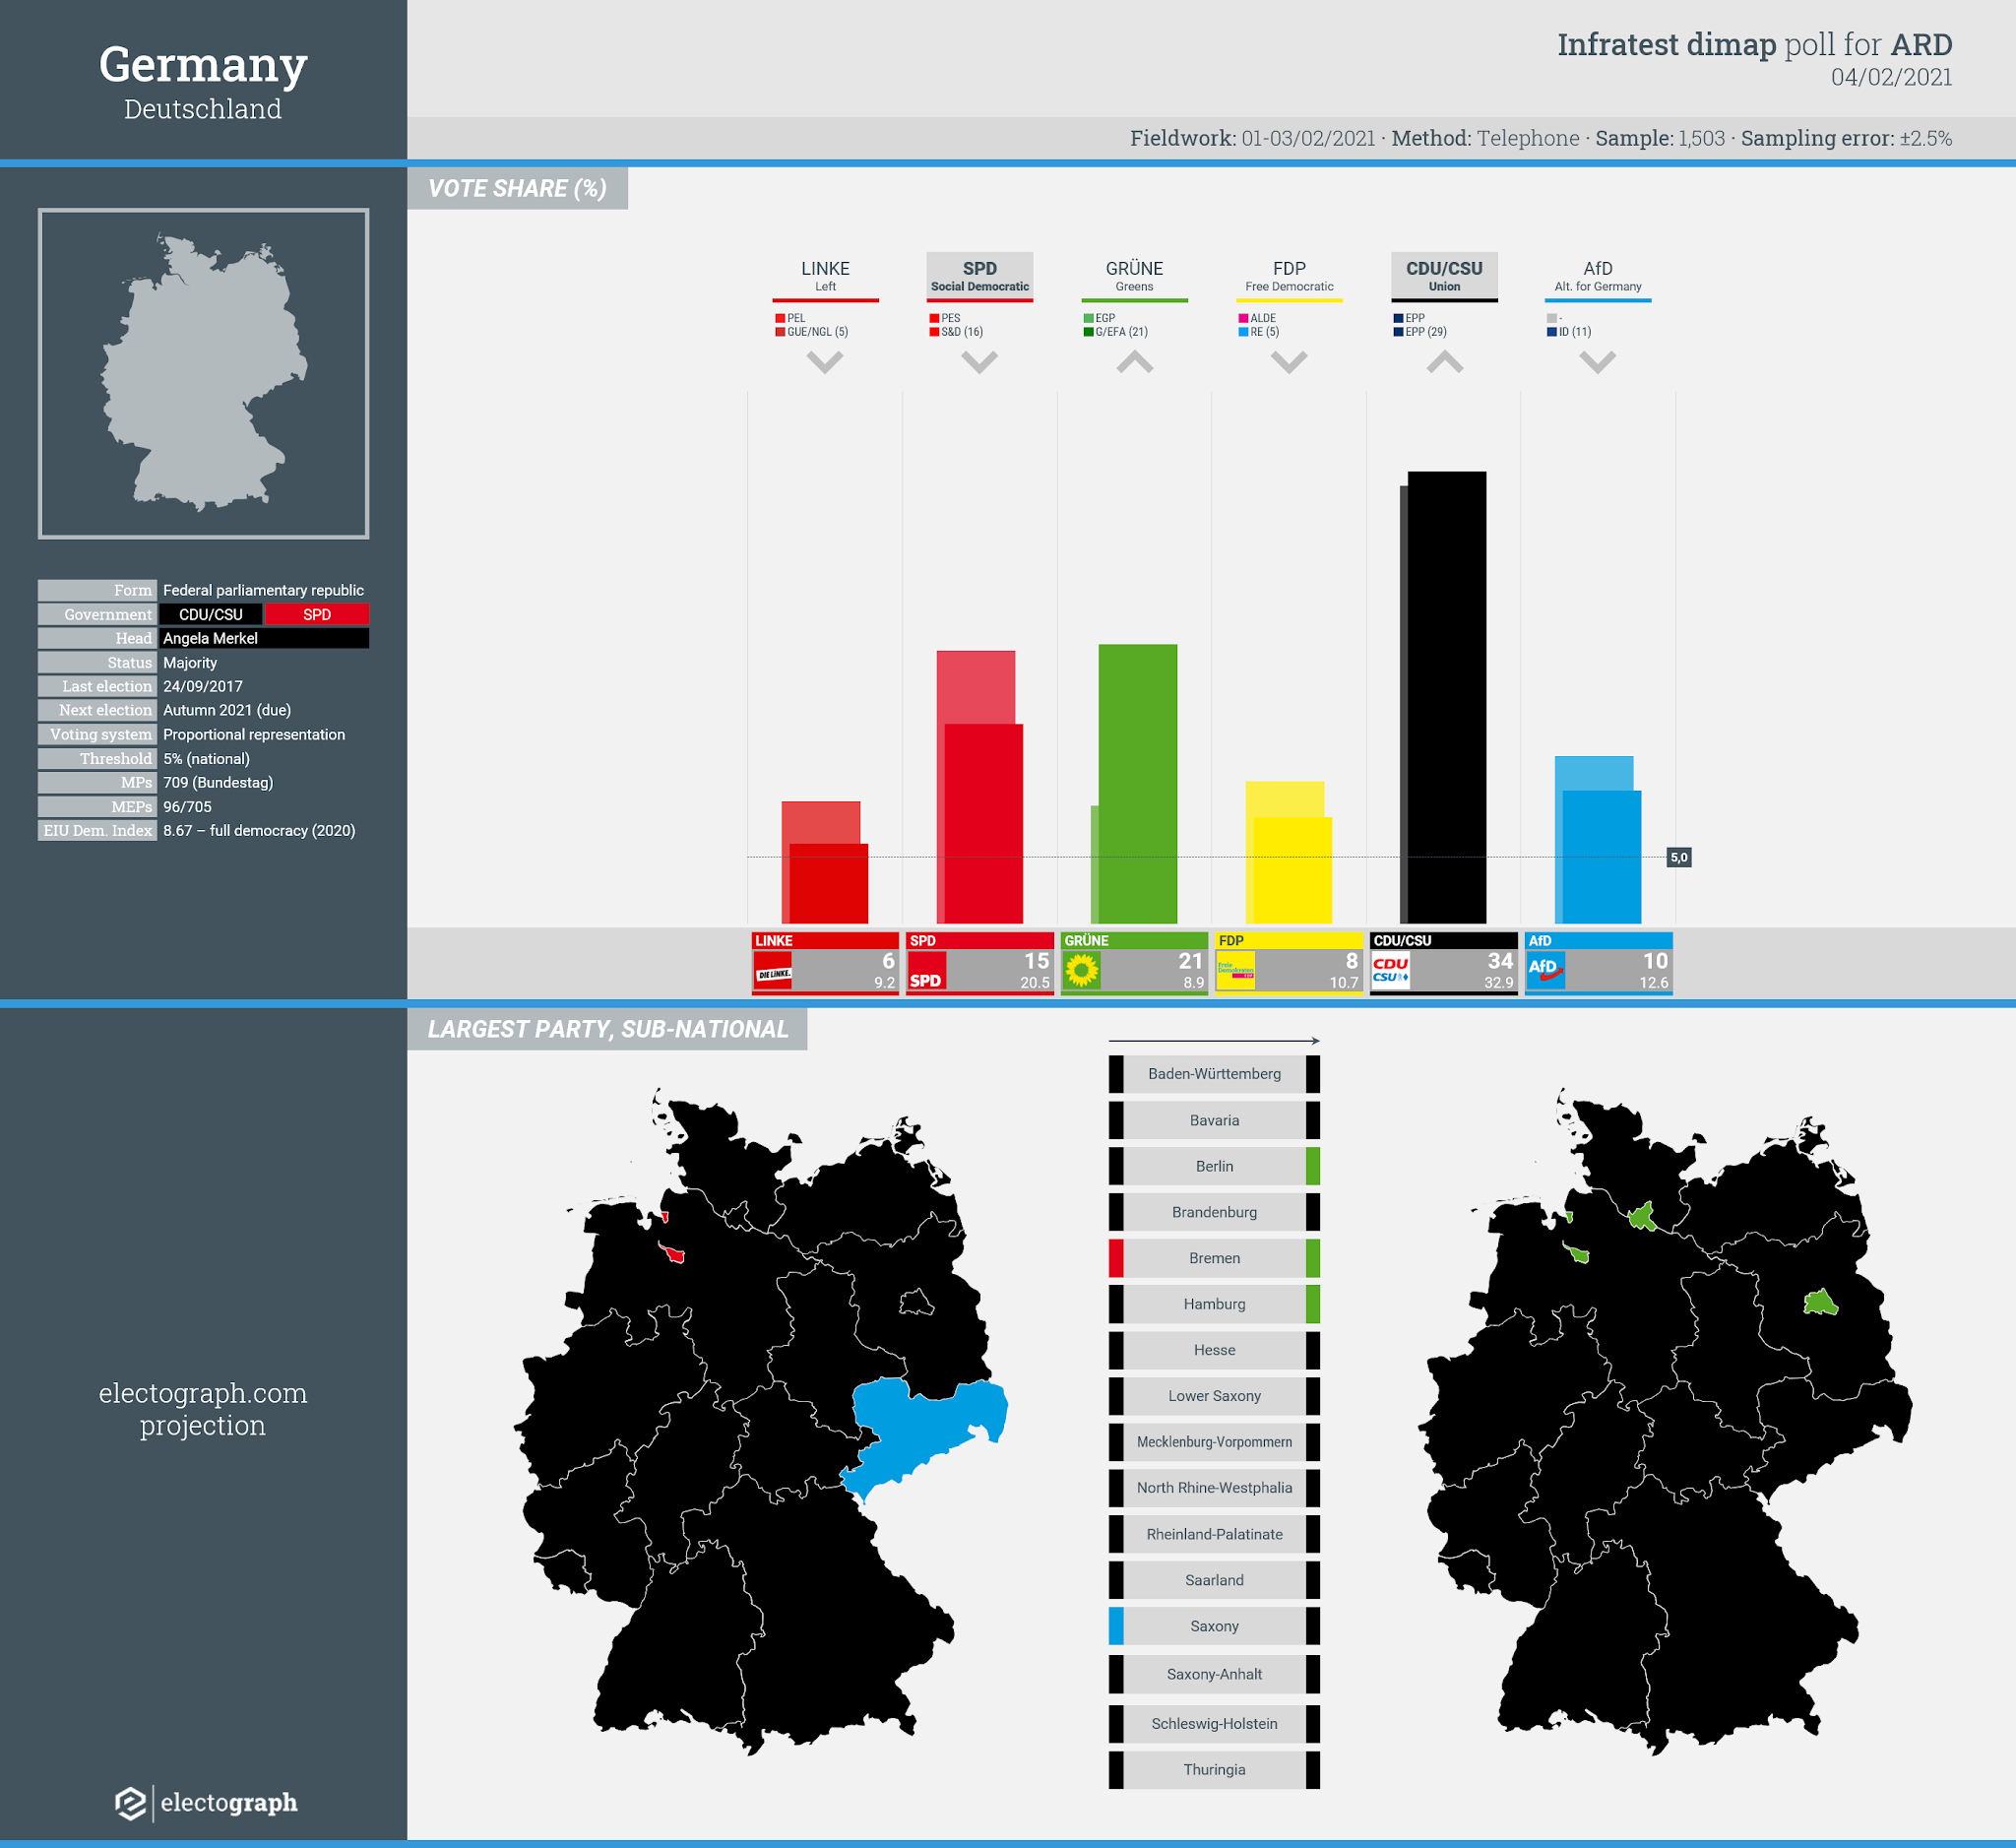 GERMANY: Infratest dimap poll chart for ARD, 4 February 2021